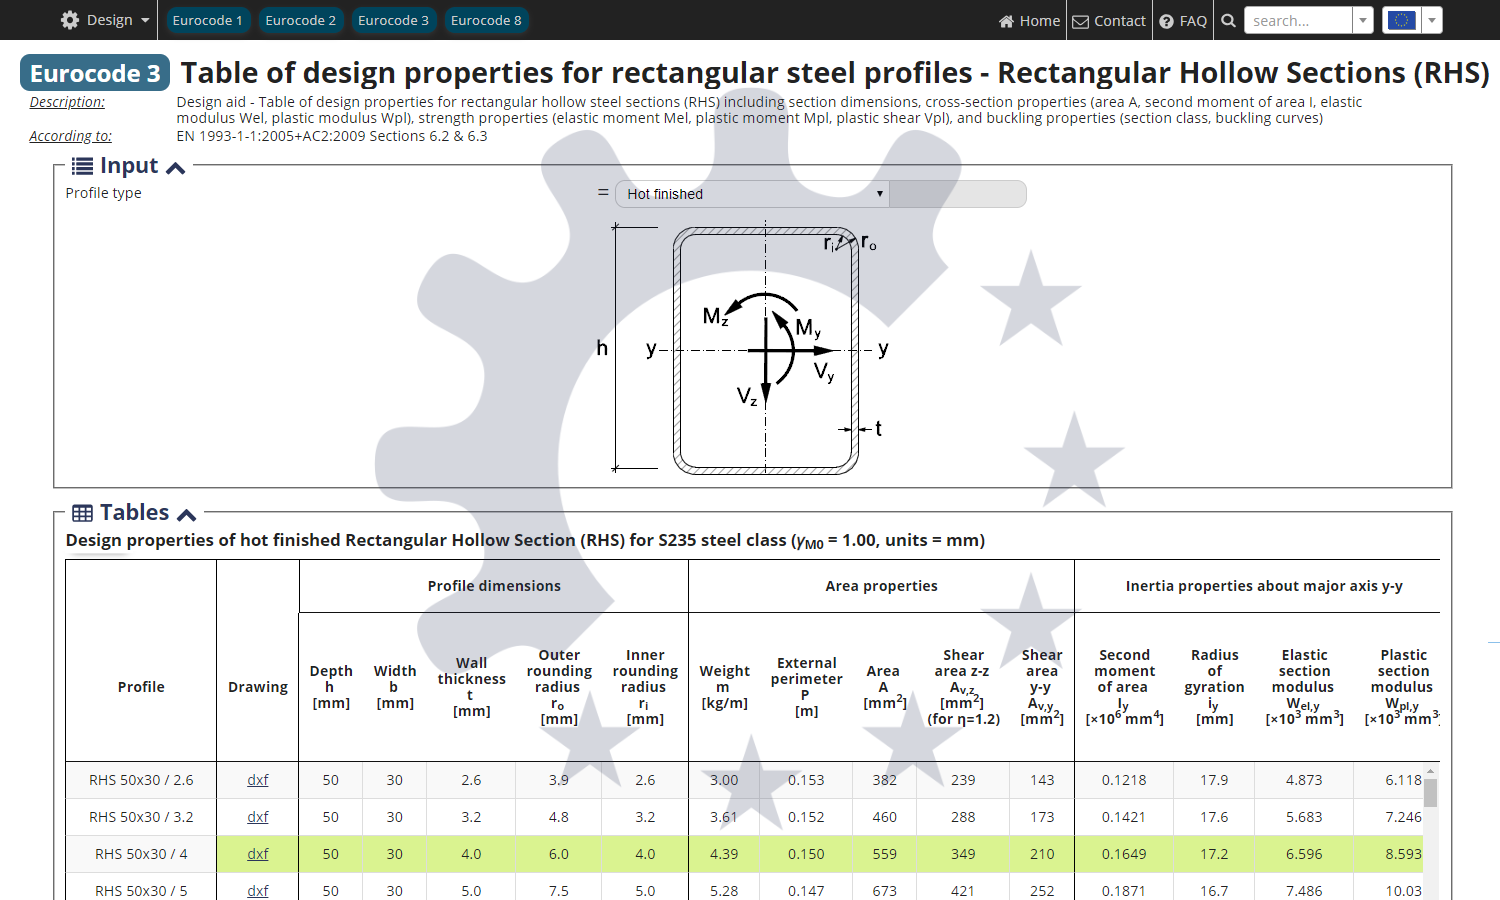 Table of design properties for Rectangular Hollow Sections RHS